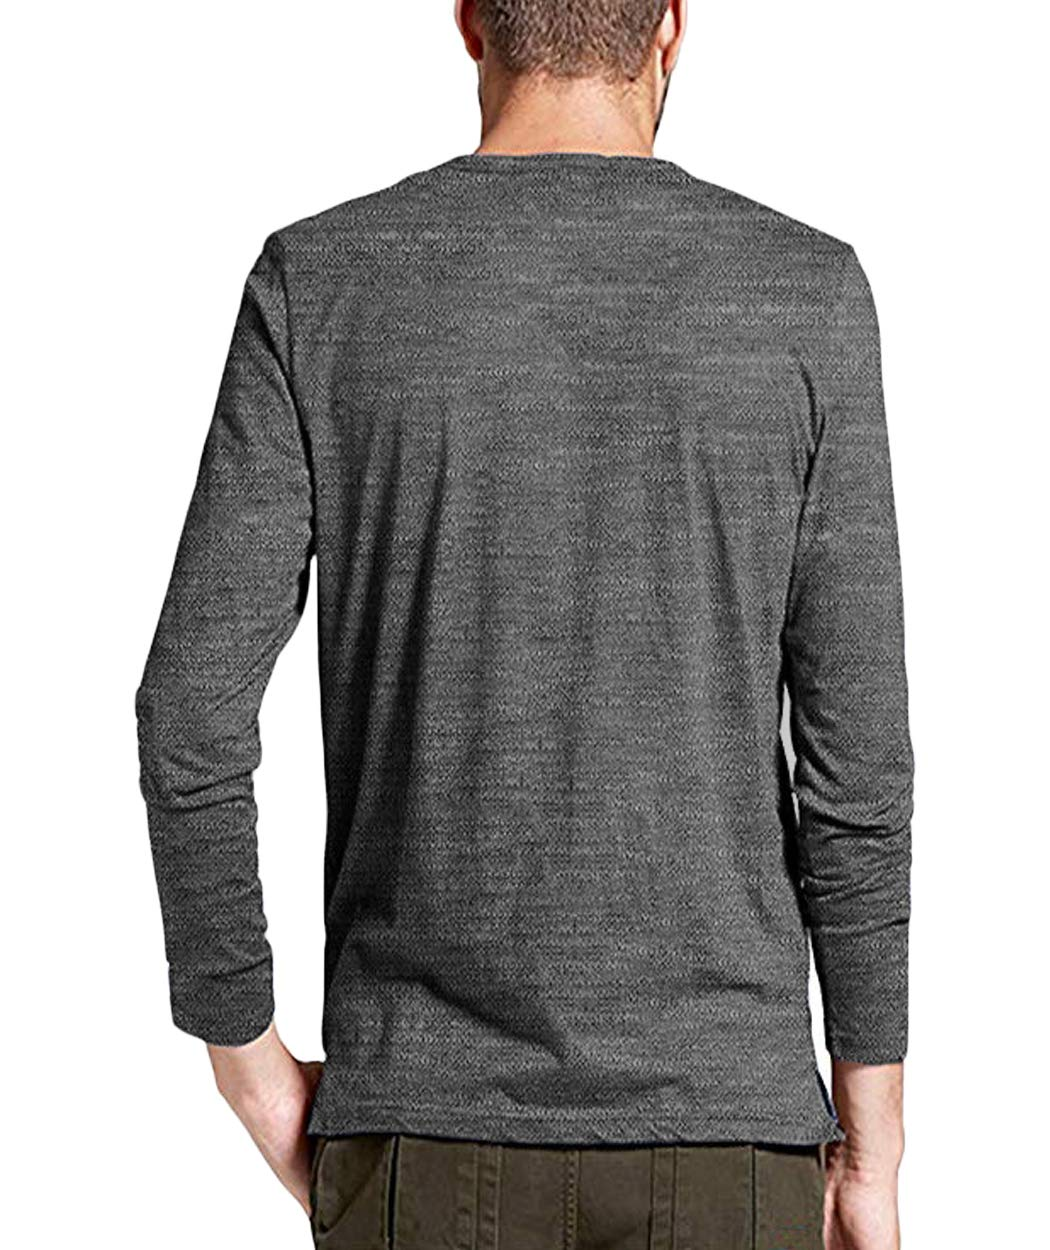 Neoyowo Men's Henley Shirt Casual Slim Fit Long Sleeve T-Shirt Soft V Neck Buttons Muscle Tops (Gray, M)